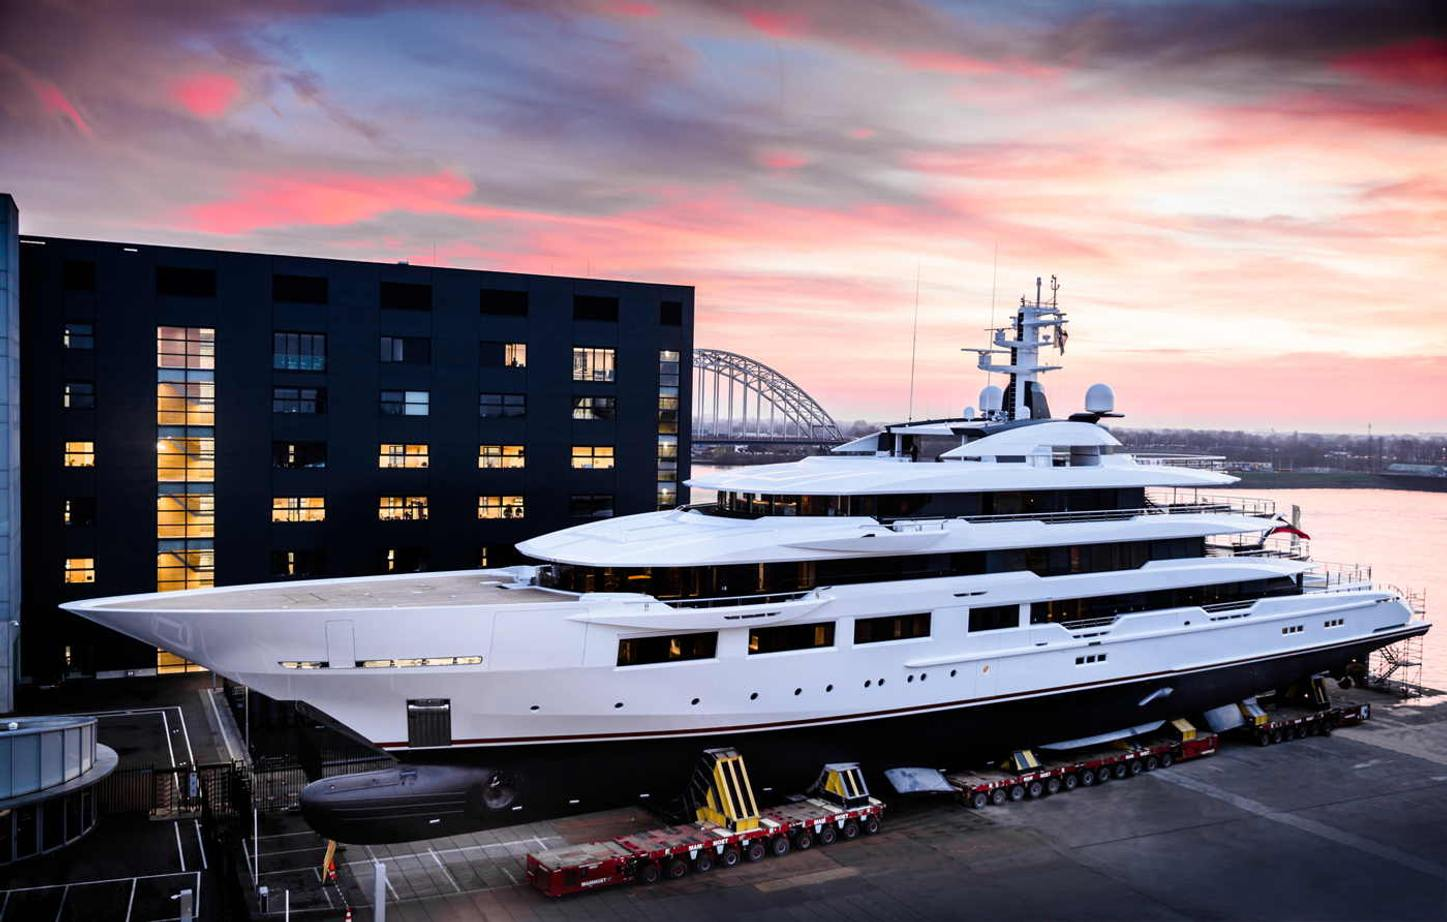 Superyacht DreAMBoat being launched at Oceanco